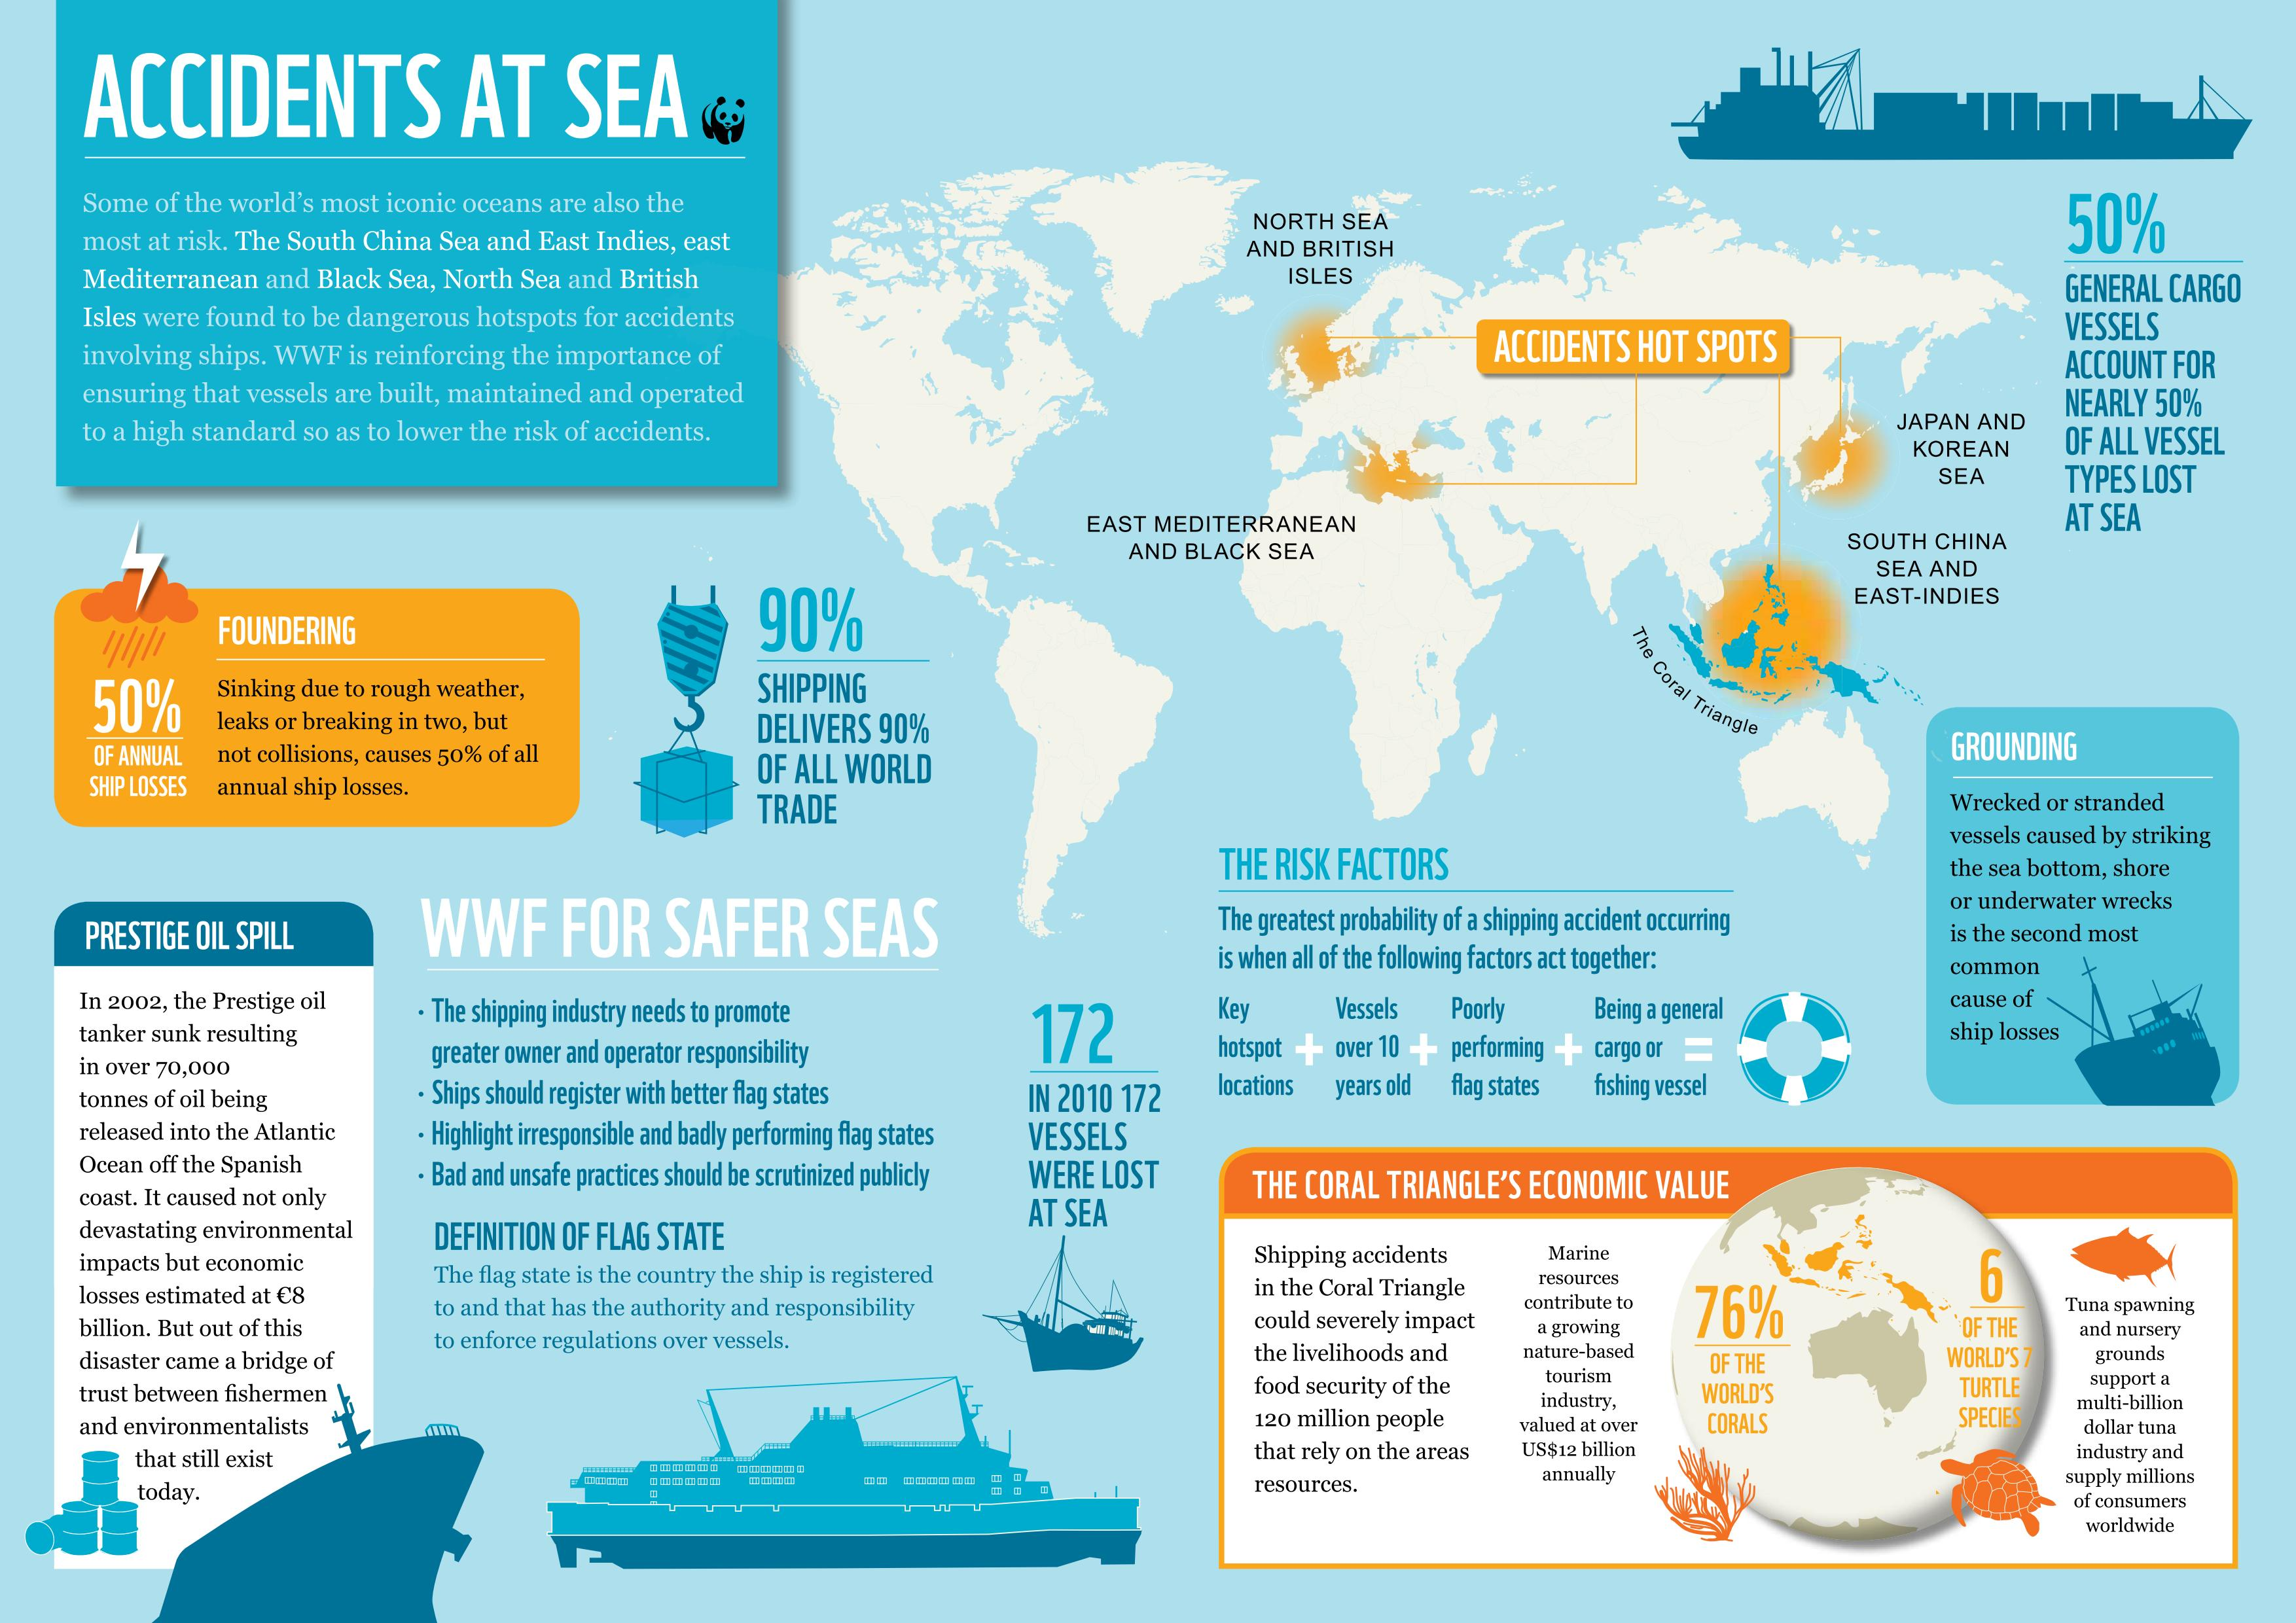 South China Sea Mediterranean And North Sea Are Shipping